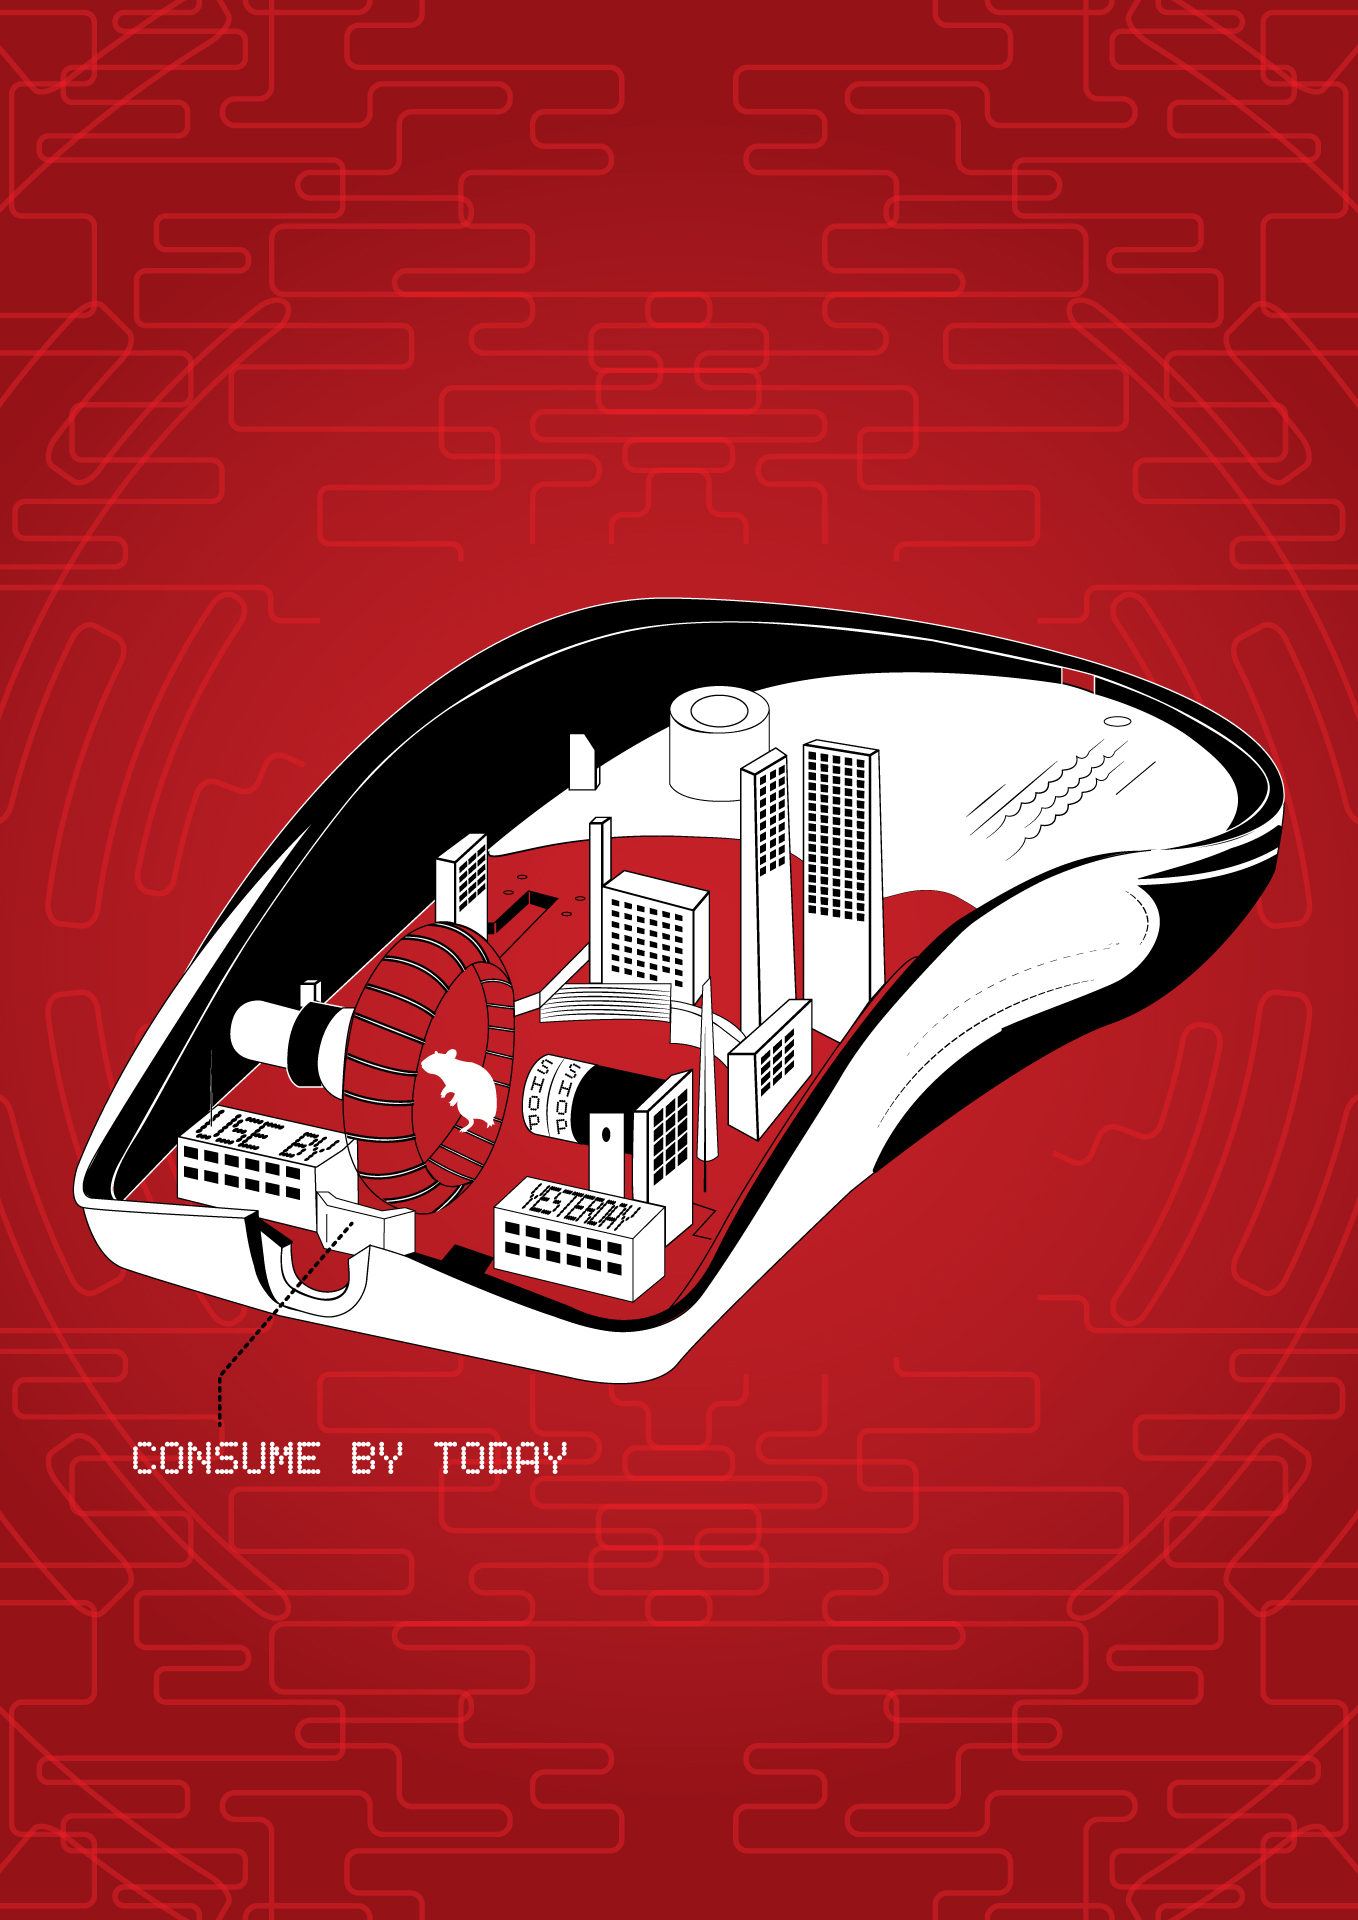 consume by today n.1